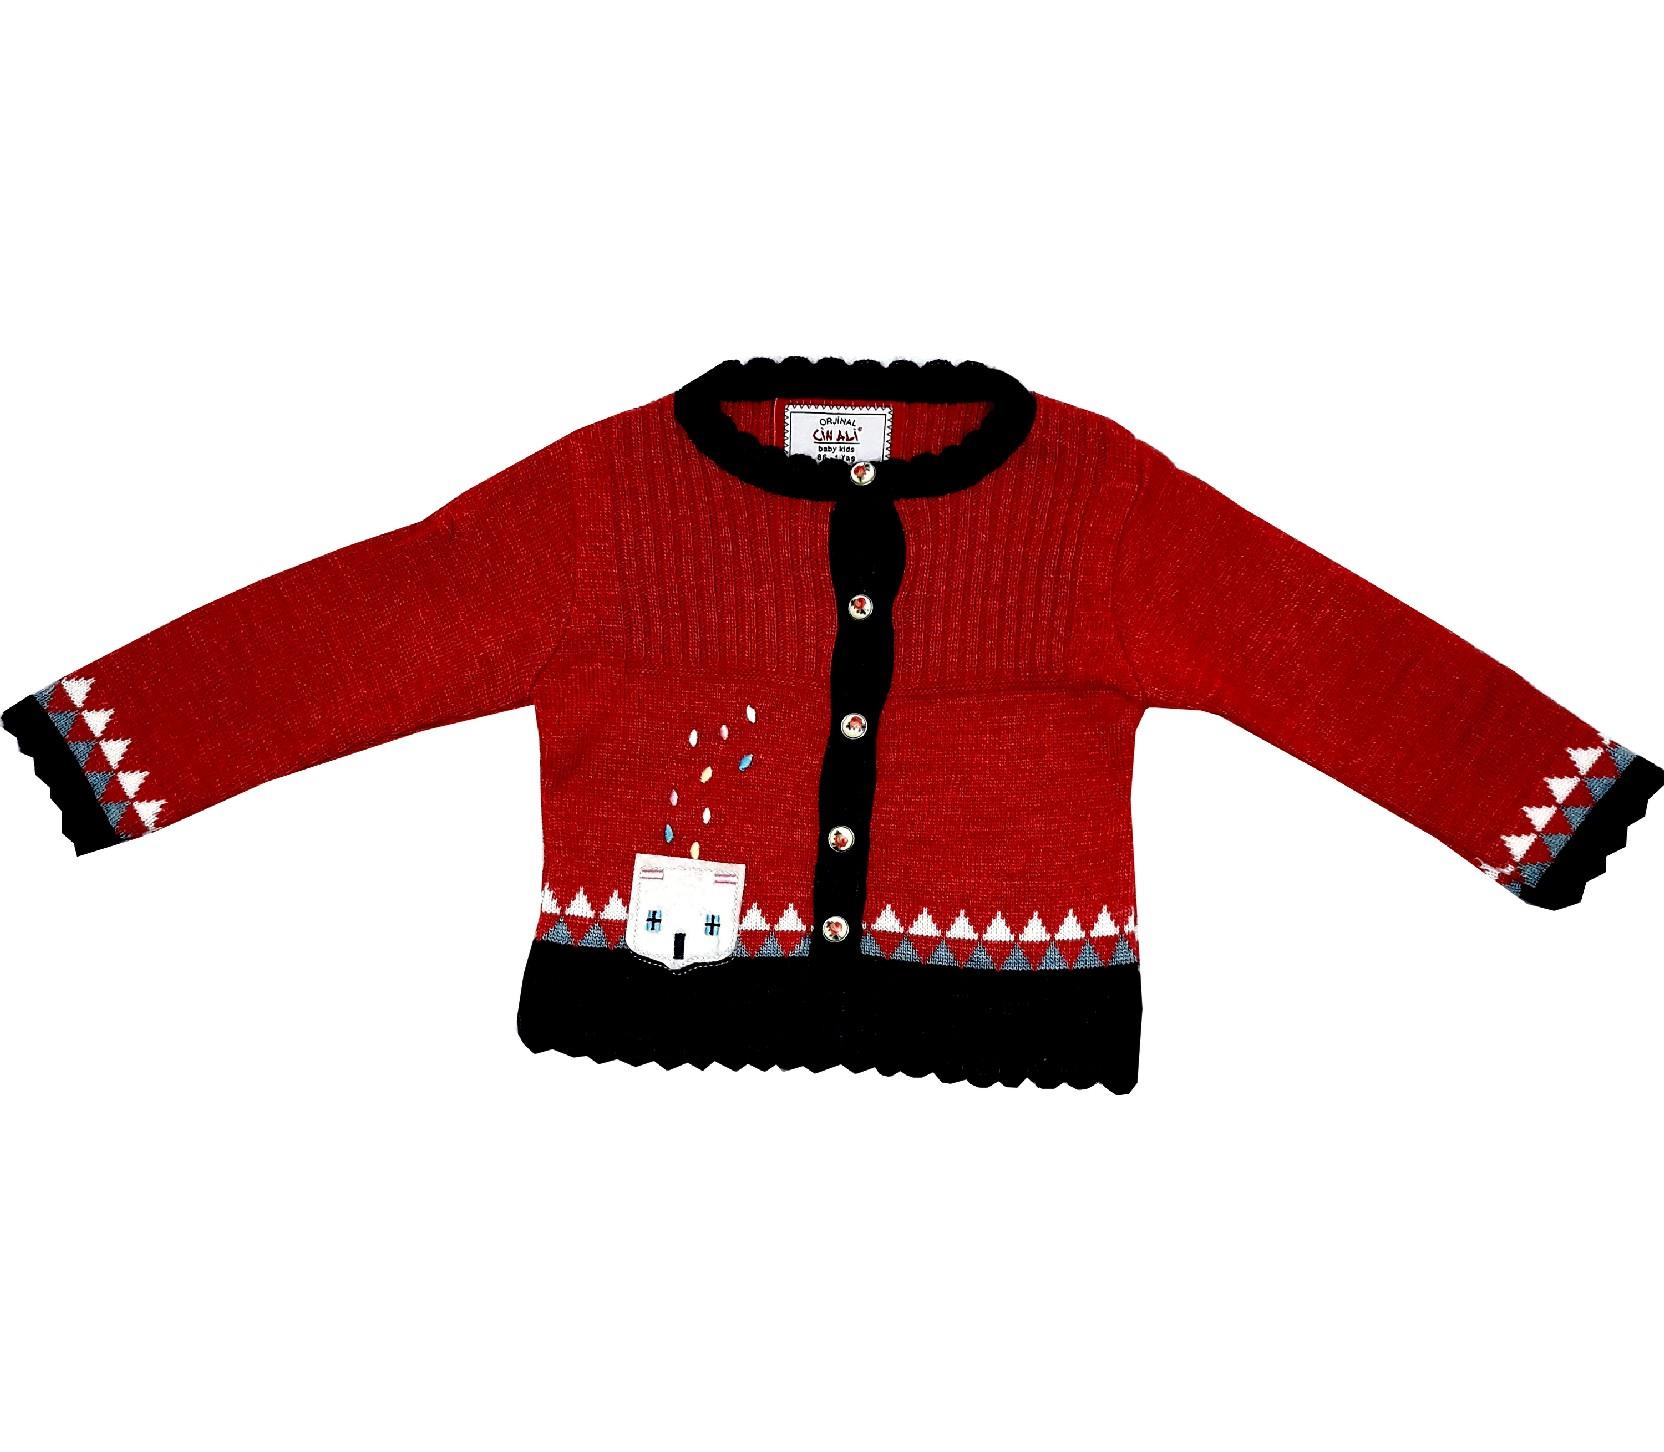 WHOLESALE GEOMETRIC PATTERNED DESIGN CARDIGAN FOR GIRL (1-2-3 AGE)